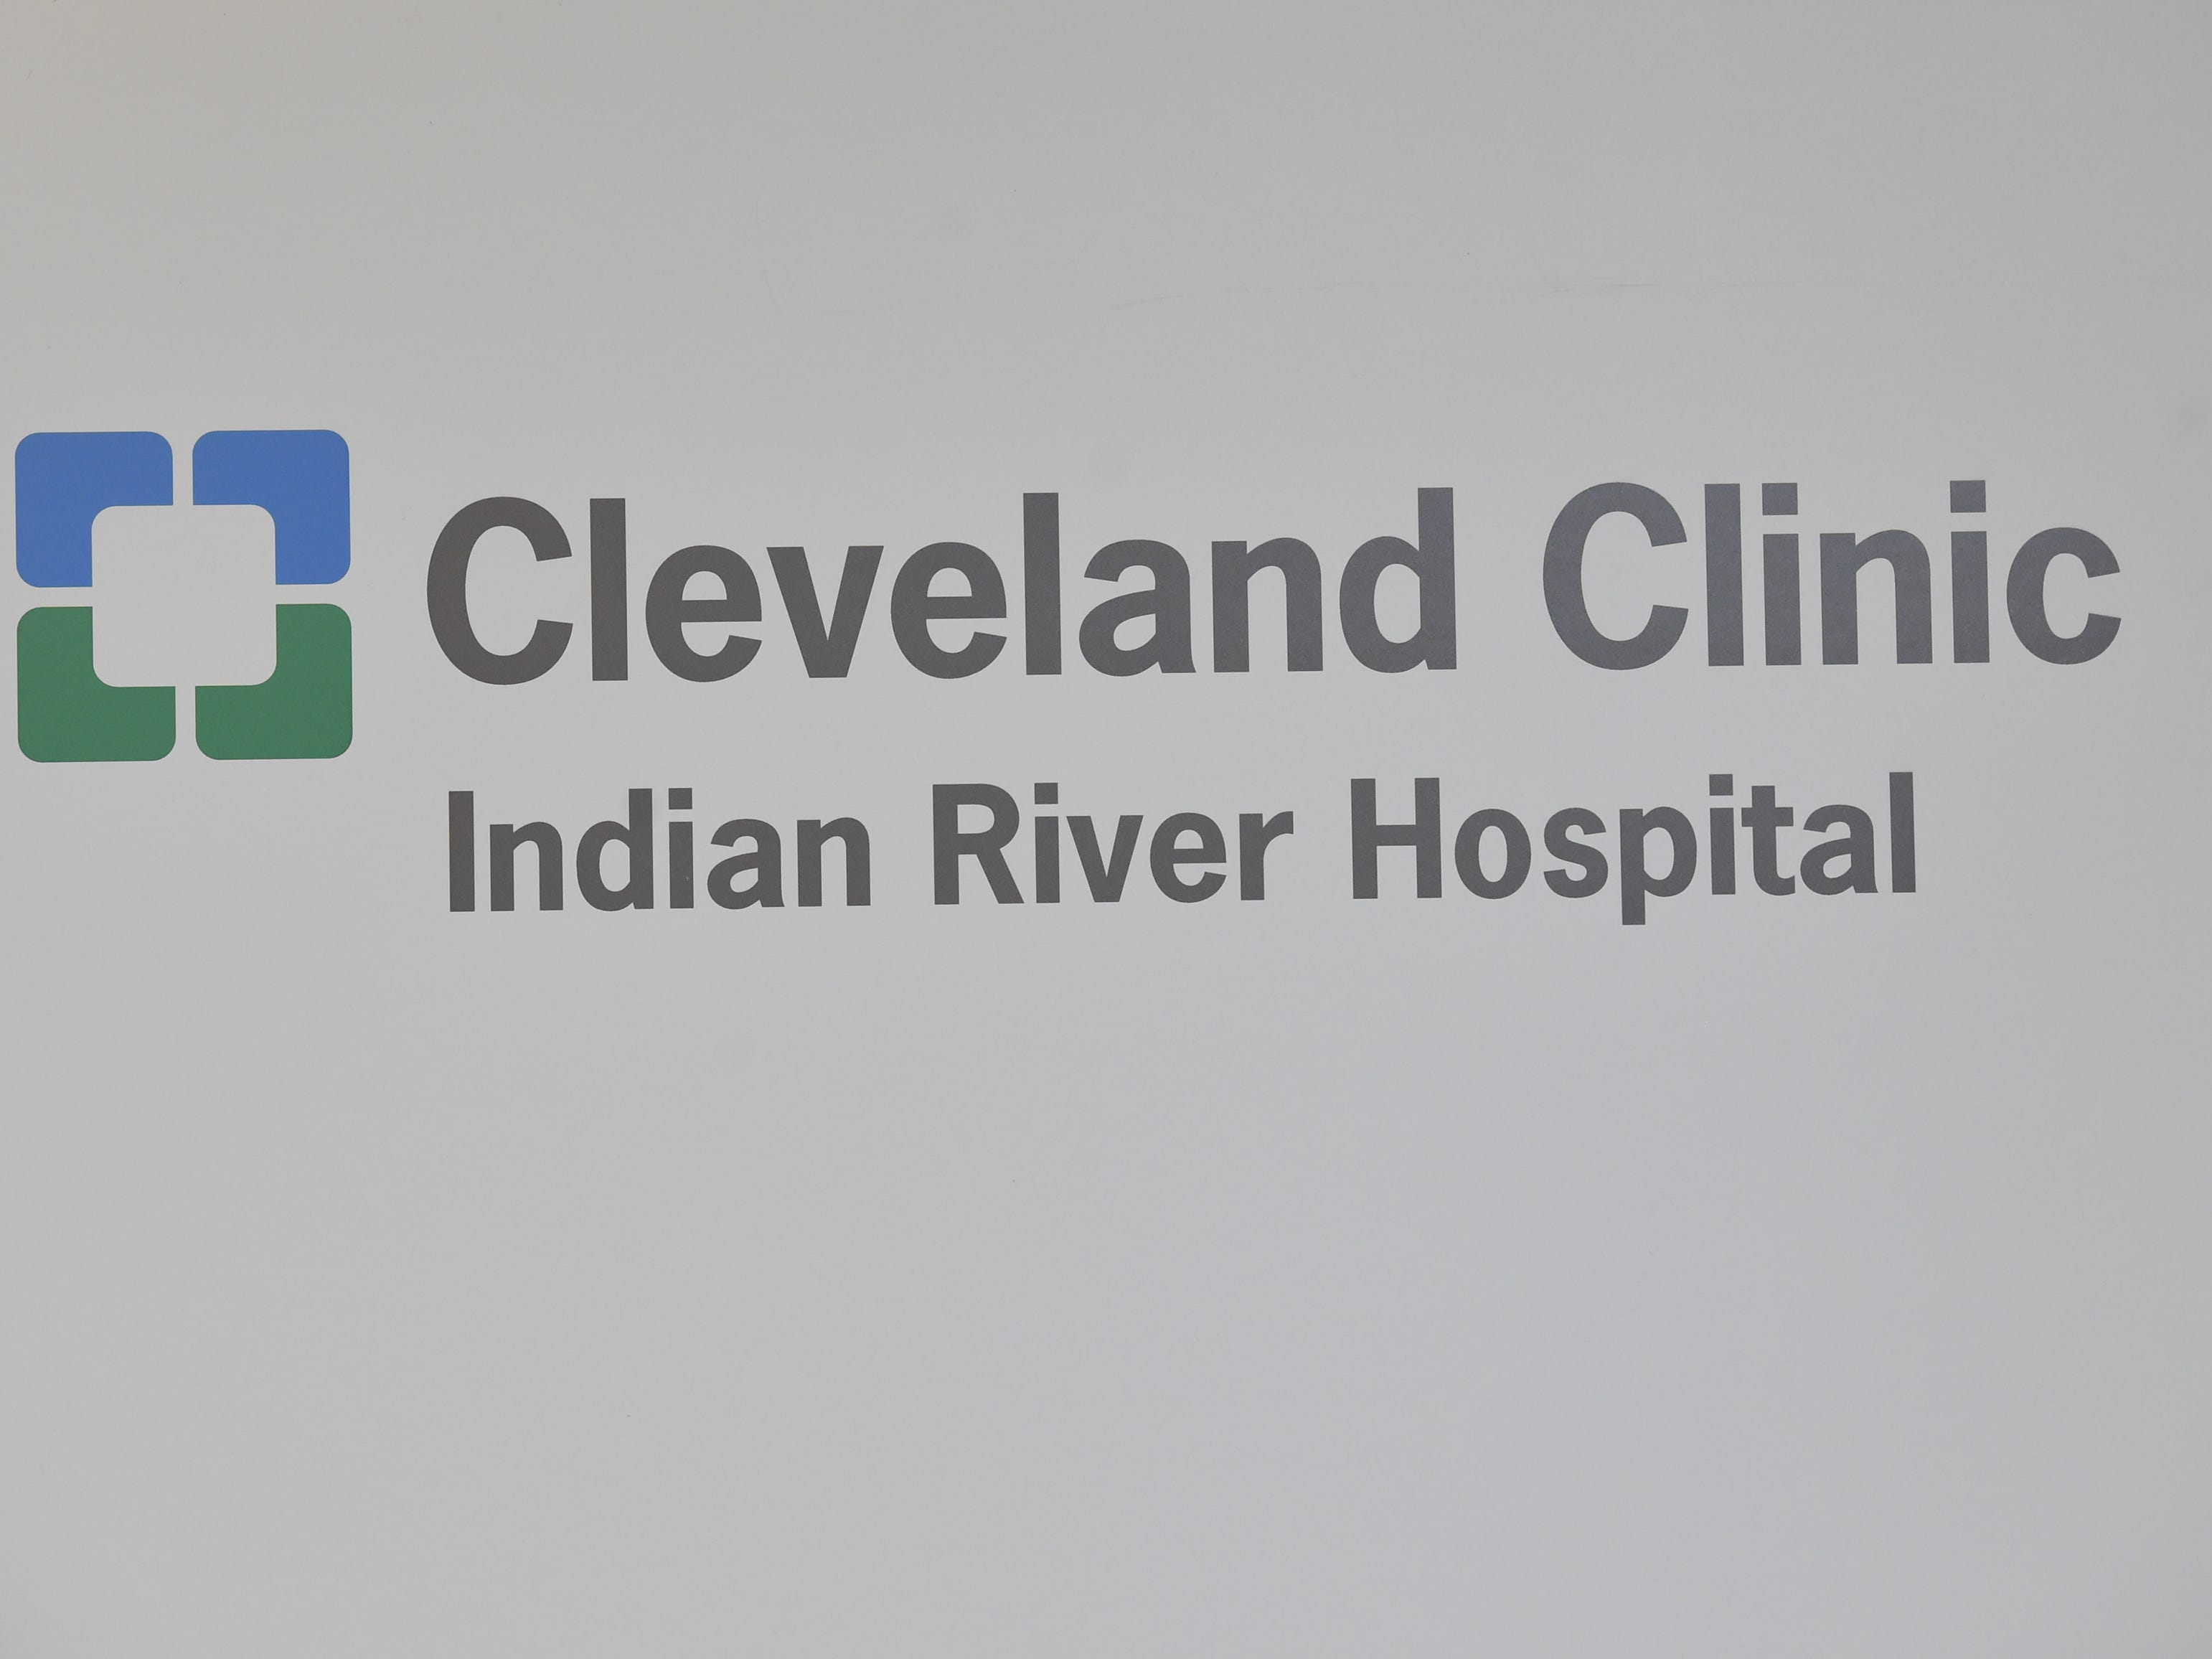 The Cleveland Clinic news conference at Tradition Hospital in Port St. Lucie on Wednesday, Jan. 9, 2019, to announce the new names of their acquired Indian River Medical Center and Martin Health System hospitals. The new names are Cleveland Clinic Martin North Hospital, Cleveland Clinic Martin South Hospital, Cleveland Clinic Tradition Hospital, Cleveland Clinic Martin Health, and Cleveland Clinic Indian River Hospital.